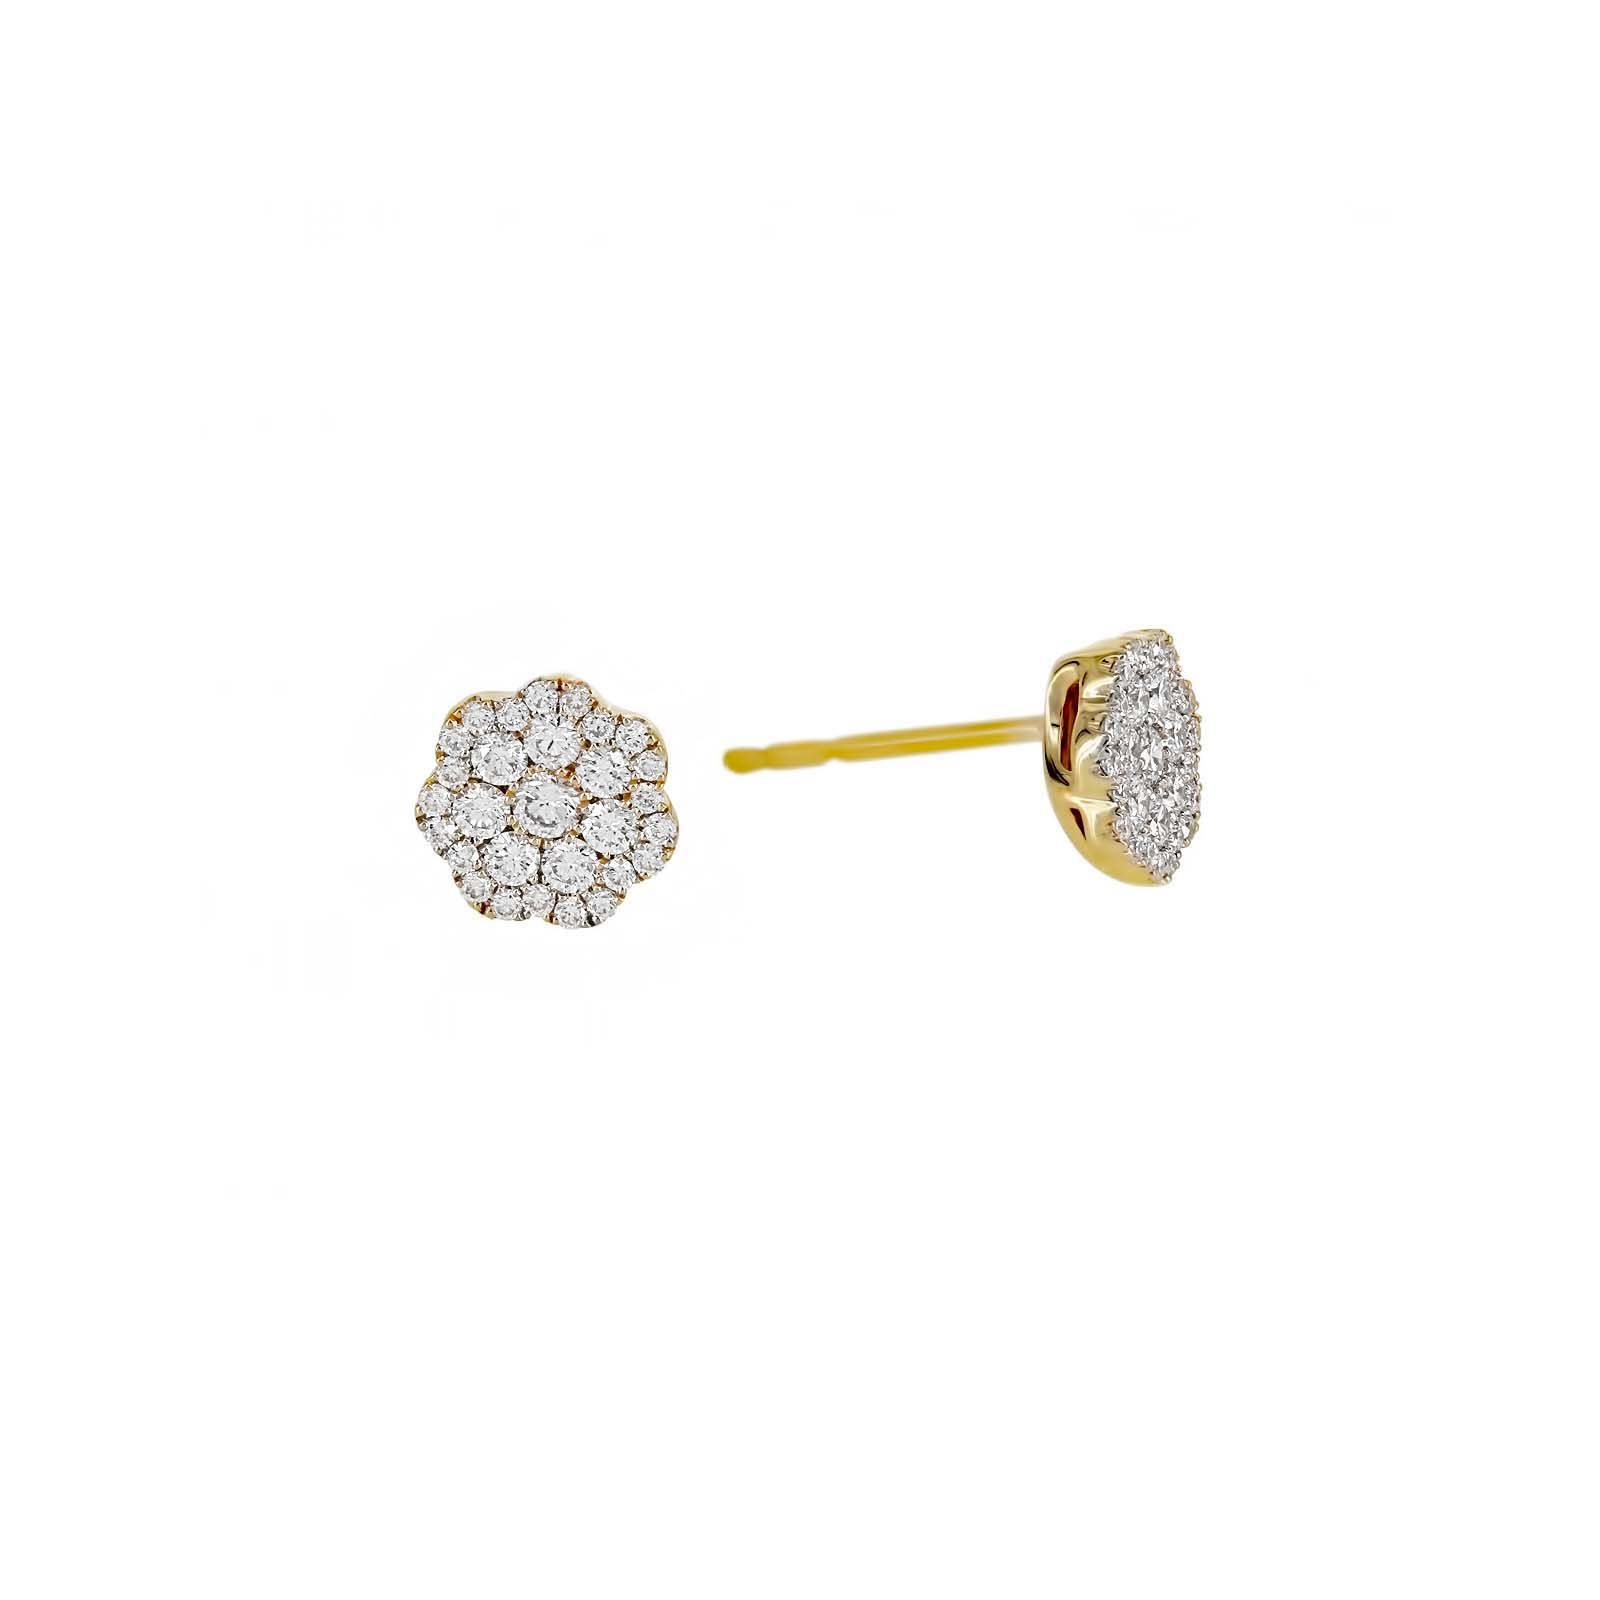 London Collection Yellow Gold Flower Diamond Cer Stud Earrings